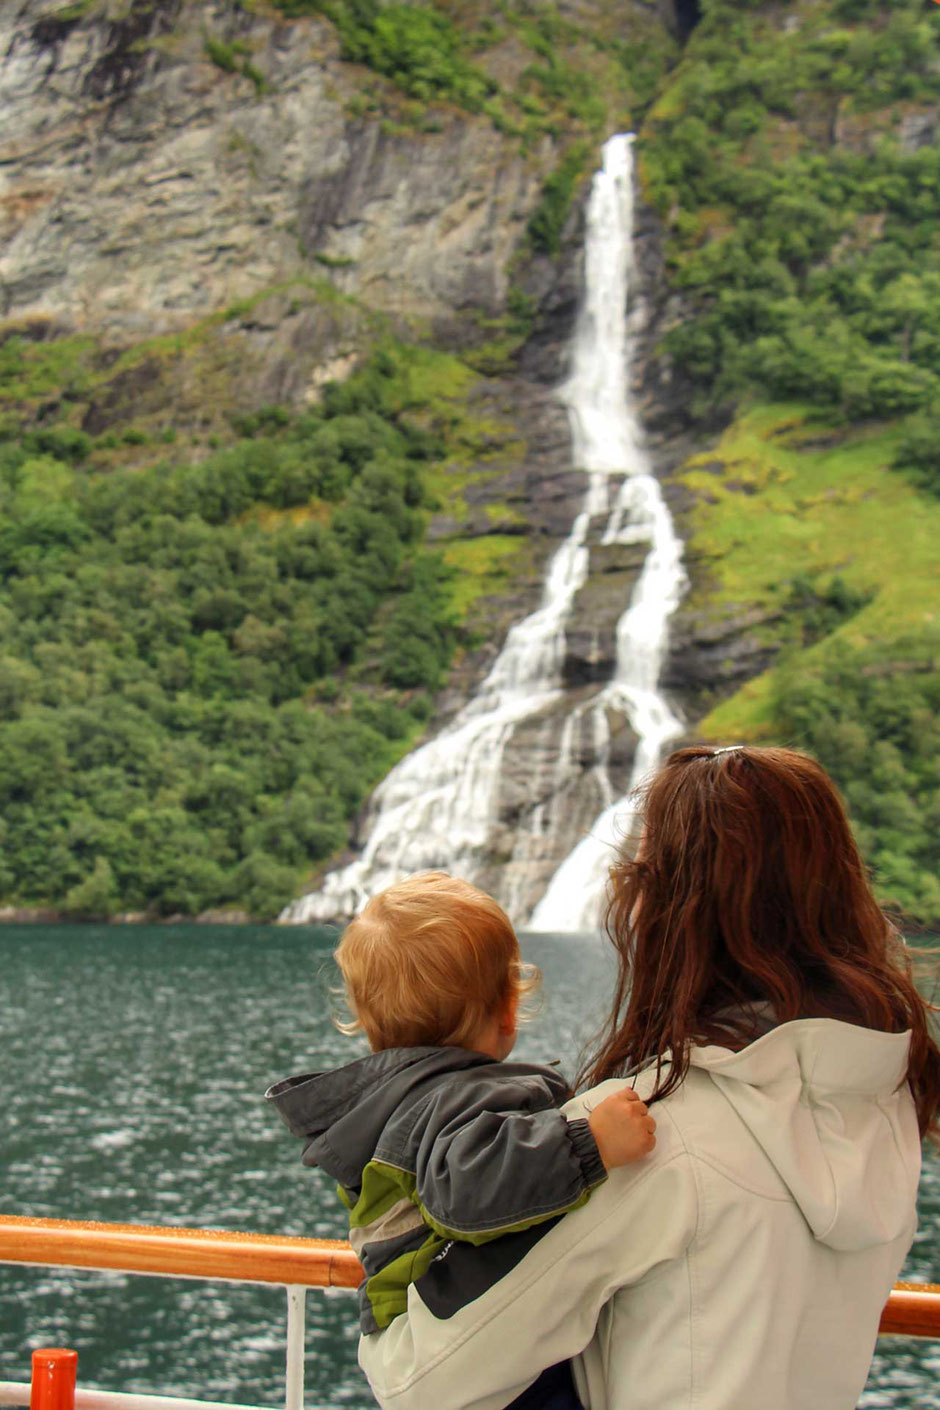 Hurtigruten voyage Alesund to Geirangerfjord with waterfall views